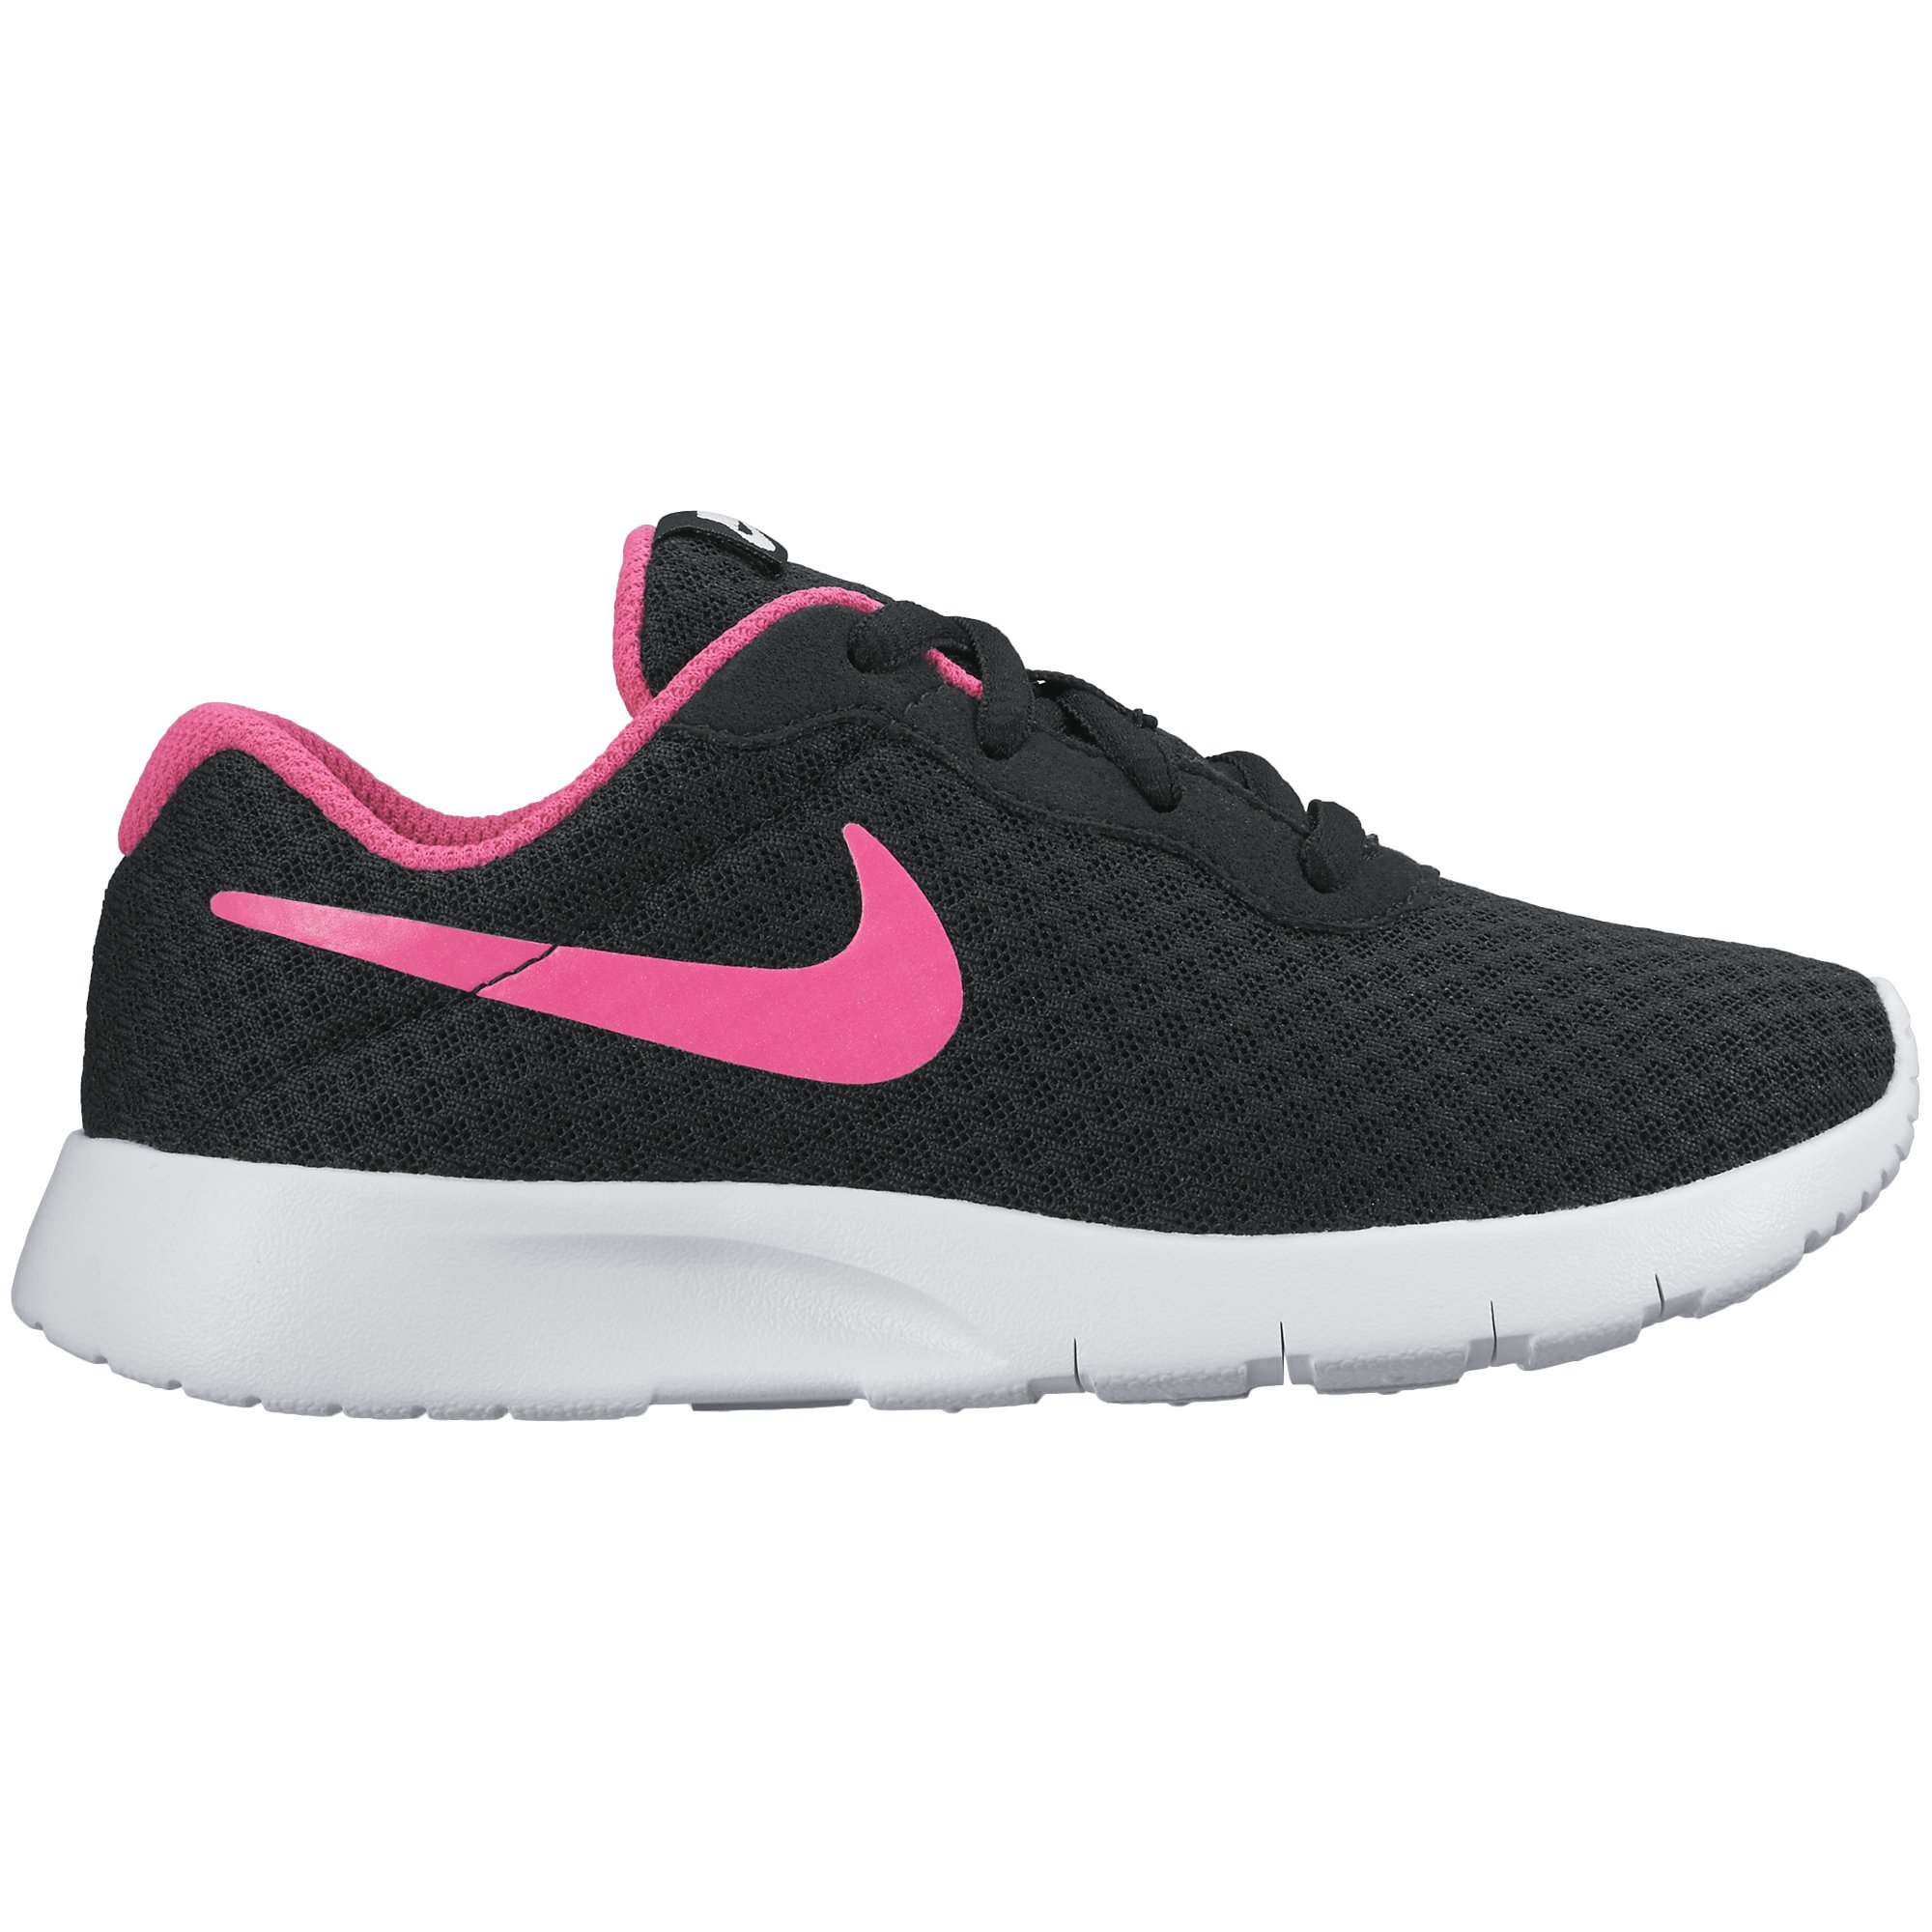 Nike Girl's Tanjun (PS) Running Shoes (11 Little Kid M, Black/Hyper Pink/White) by Nike (Image #1)